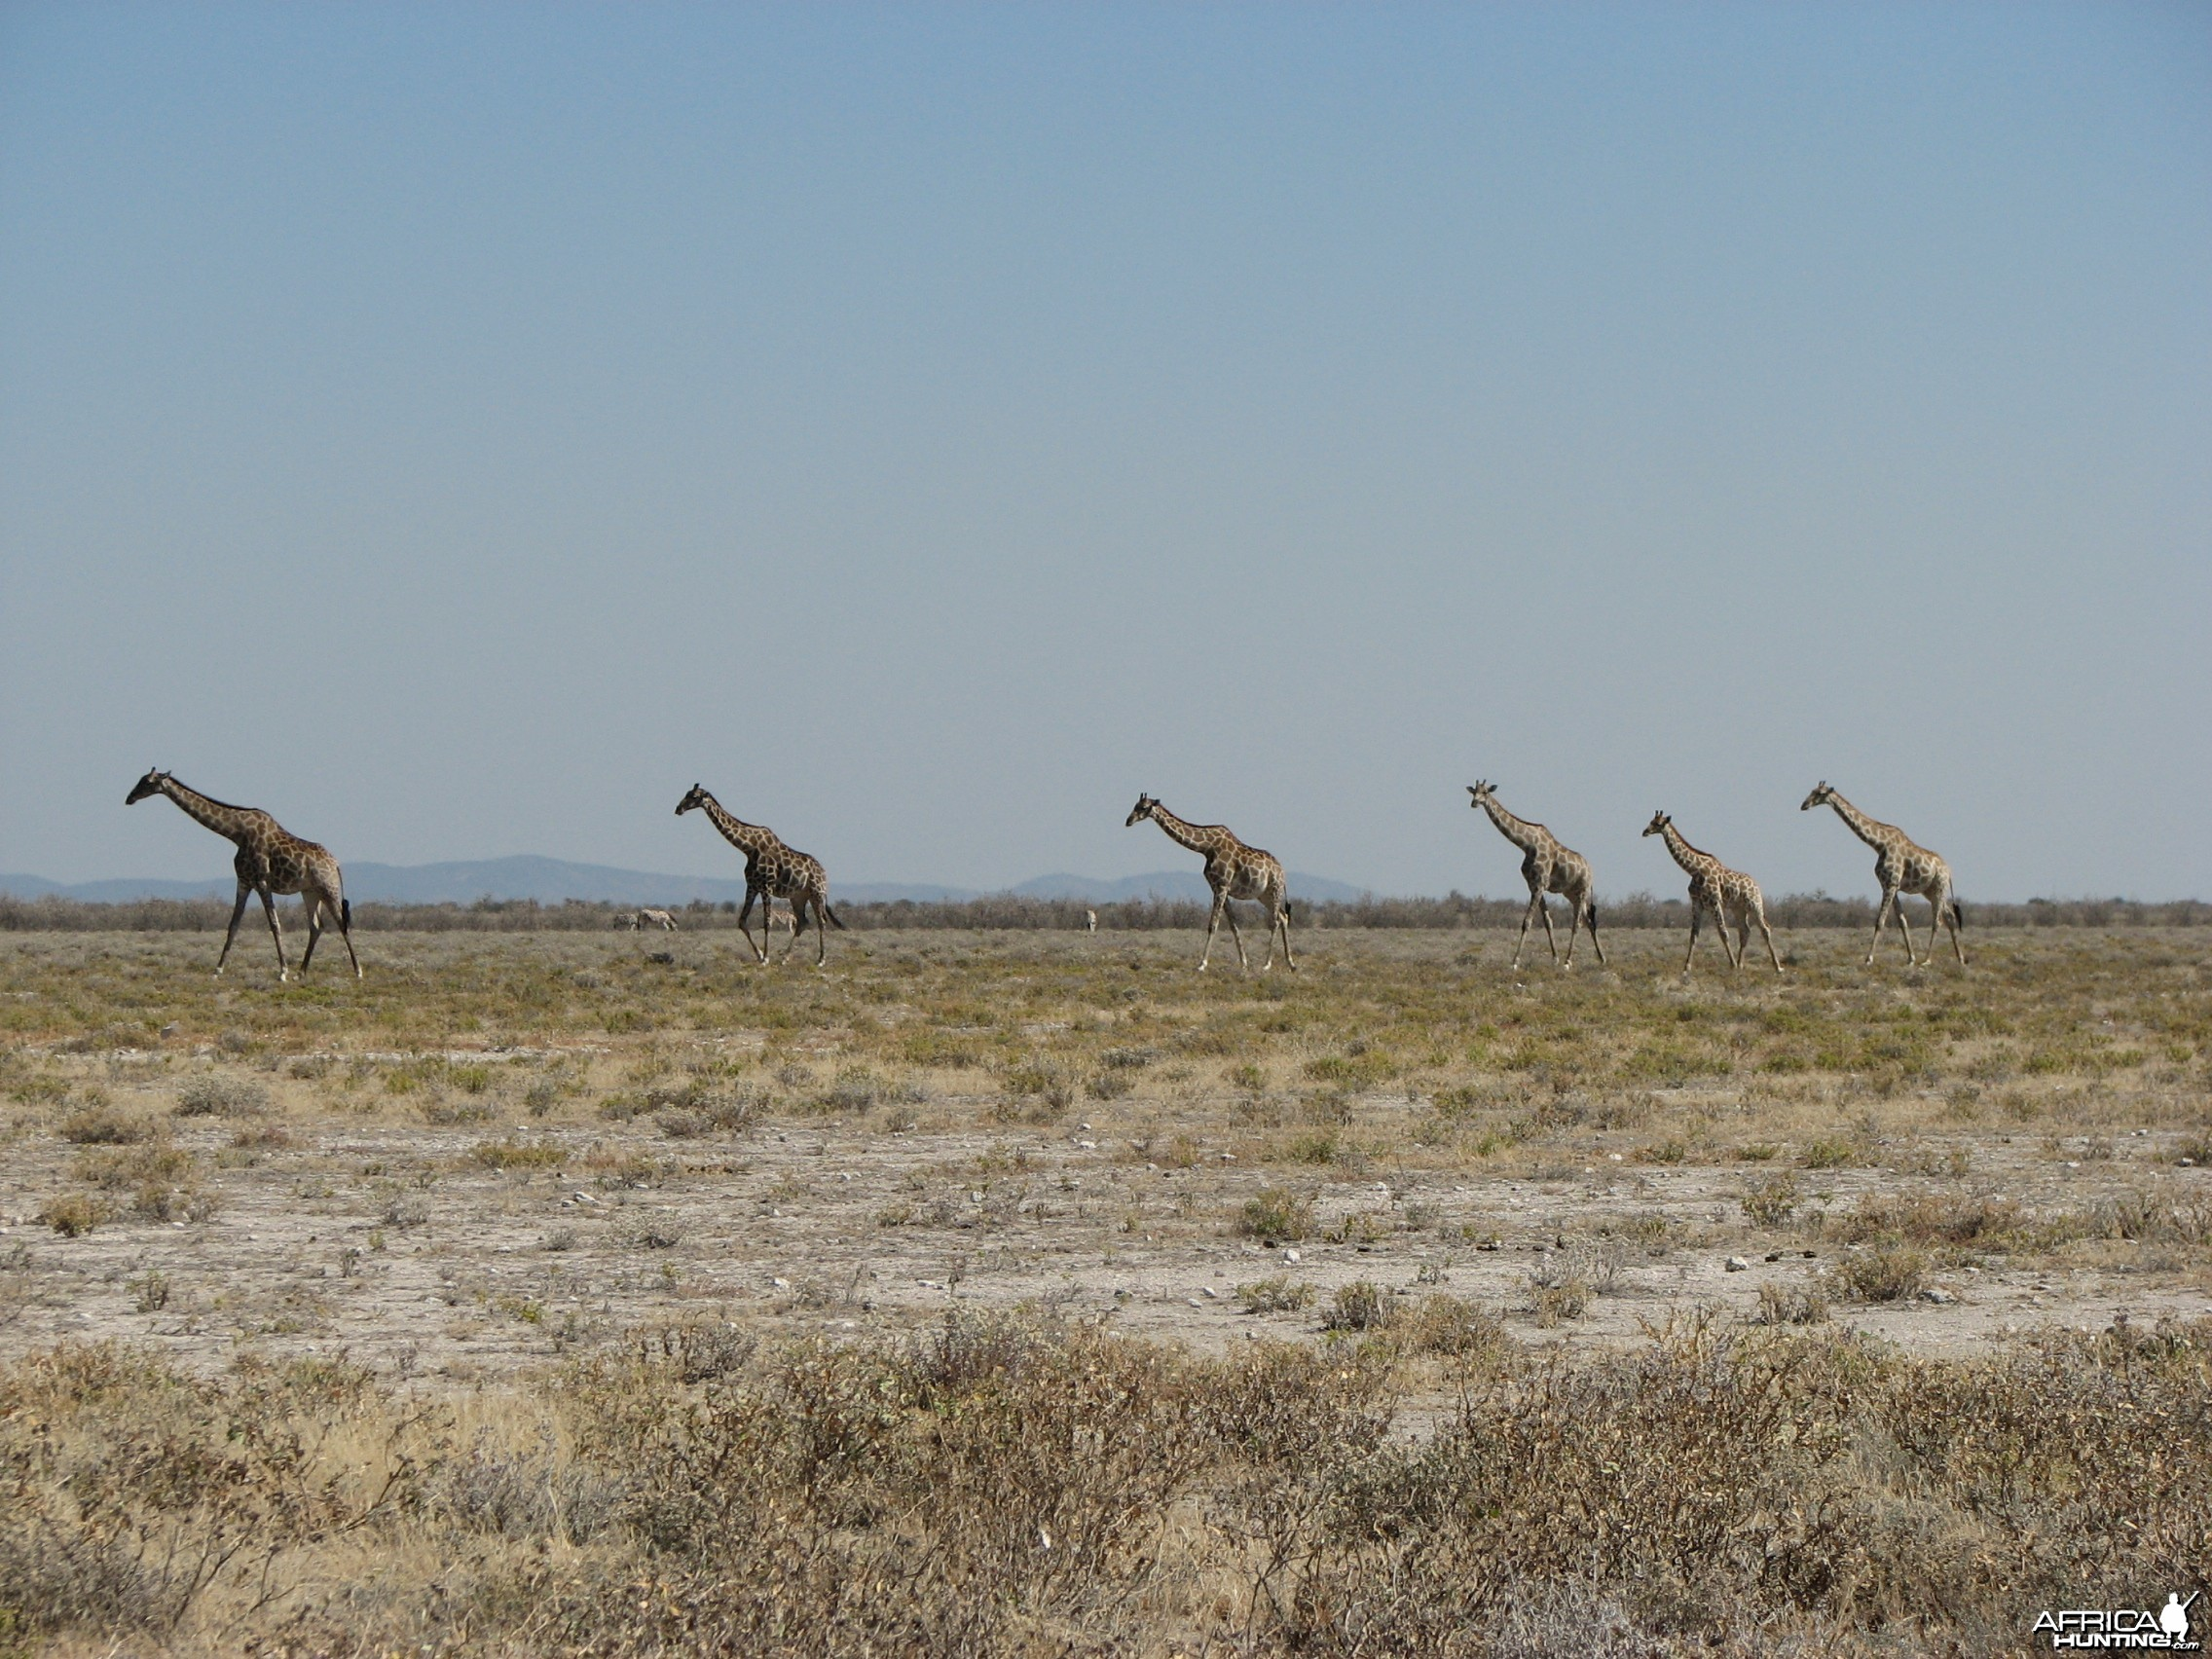 Giraffes at Etosha National Park, Namibia